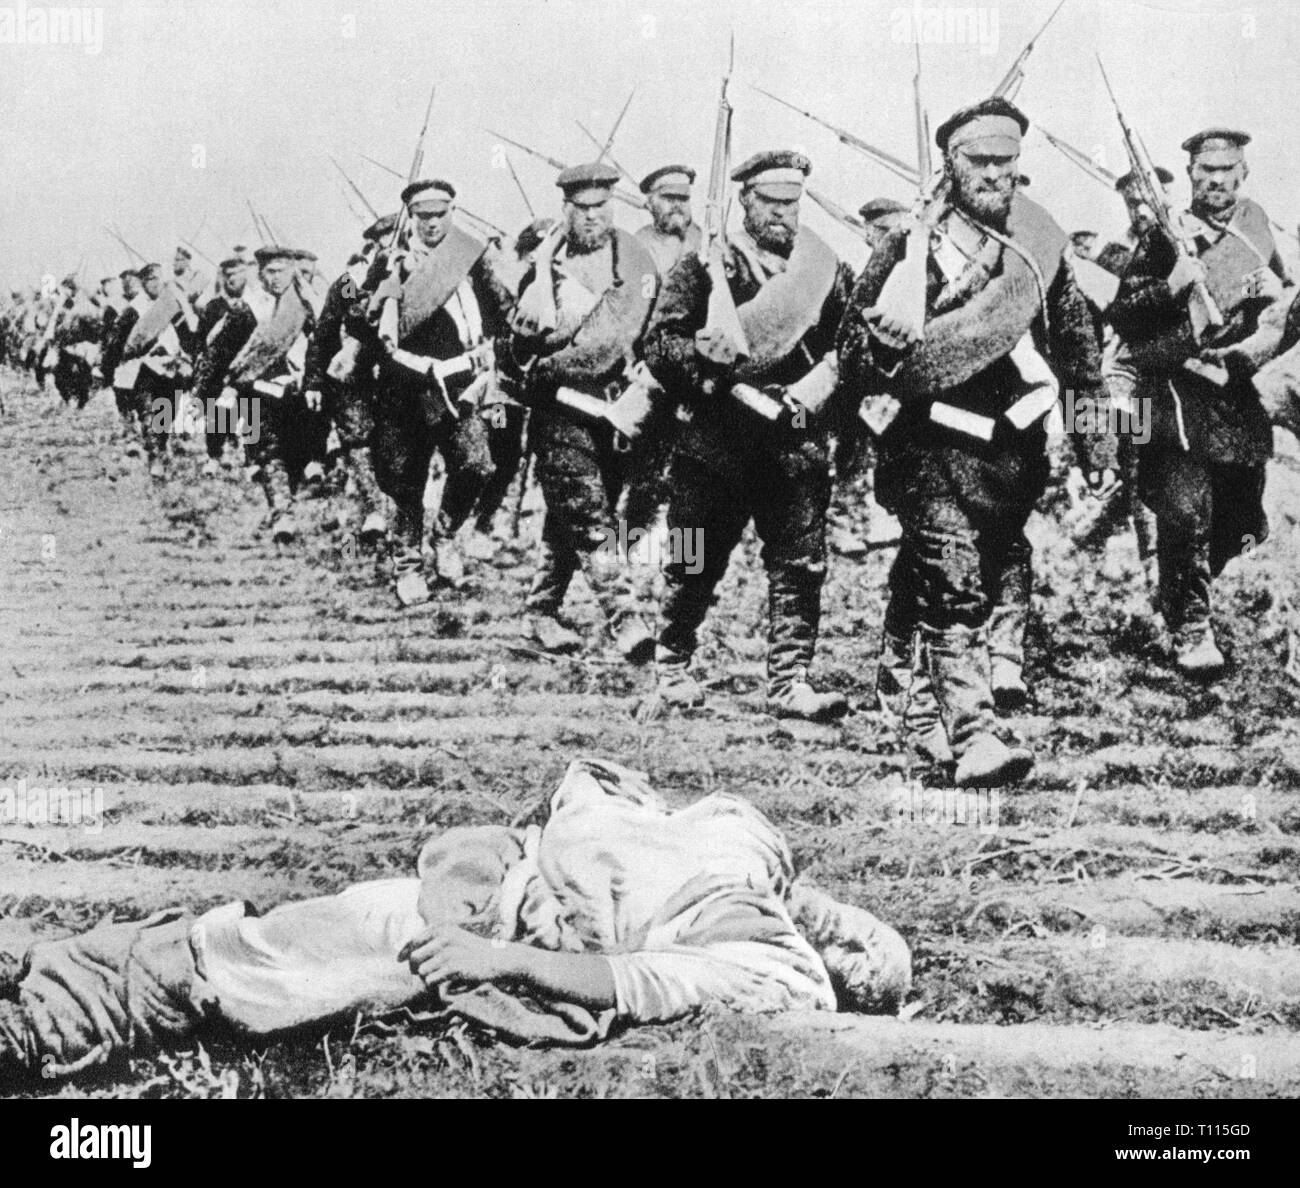 Russo-Japanese War 1904 - 1905, retreat of the Russian army, March 1905, Russo - Japanese, soldiers, soldier, military, march, marching, field, fields, dead body, dead bodies, corpse, corpses, Manchuria, China, empire, empires, Russia, Russian Empire, czardom, tsardom, 20th century, 1900s, war, wars, retreat, retreats, army, armies, historic, historical, Additional-Rights-Clearance-Info-Not-Available - Stock Image